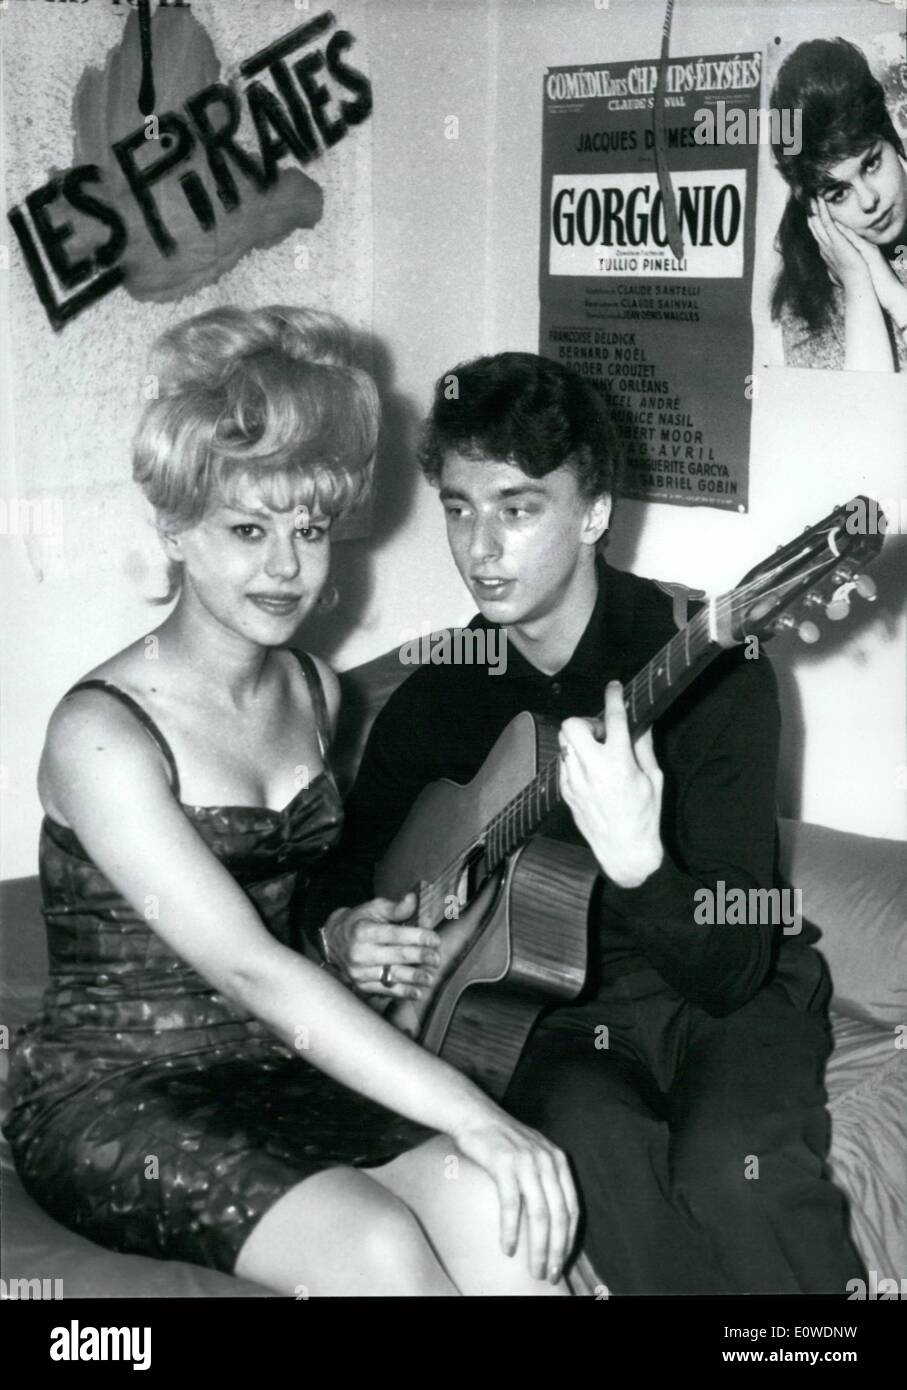 Jun. 06, 1962 - The Pirates Wedding: French Jazz men team ''The Pirates'' will have a wedding party. Their guitarist gets married. Photos shows Jean Veidlg plays the guitar for his fiance, young starlett Francoise Deldick. - Stock Image